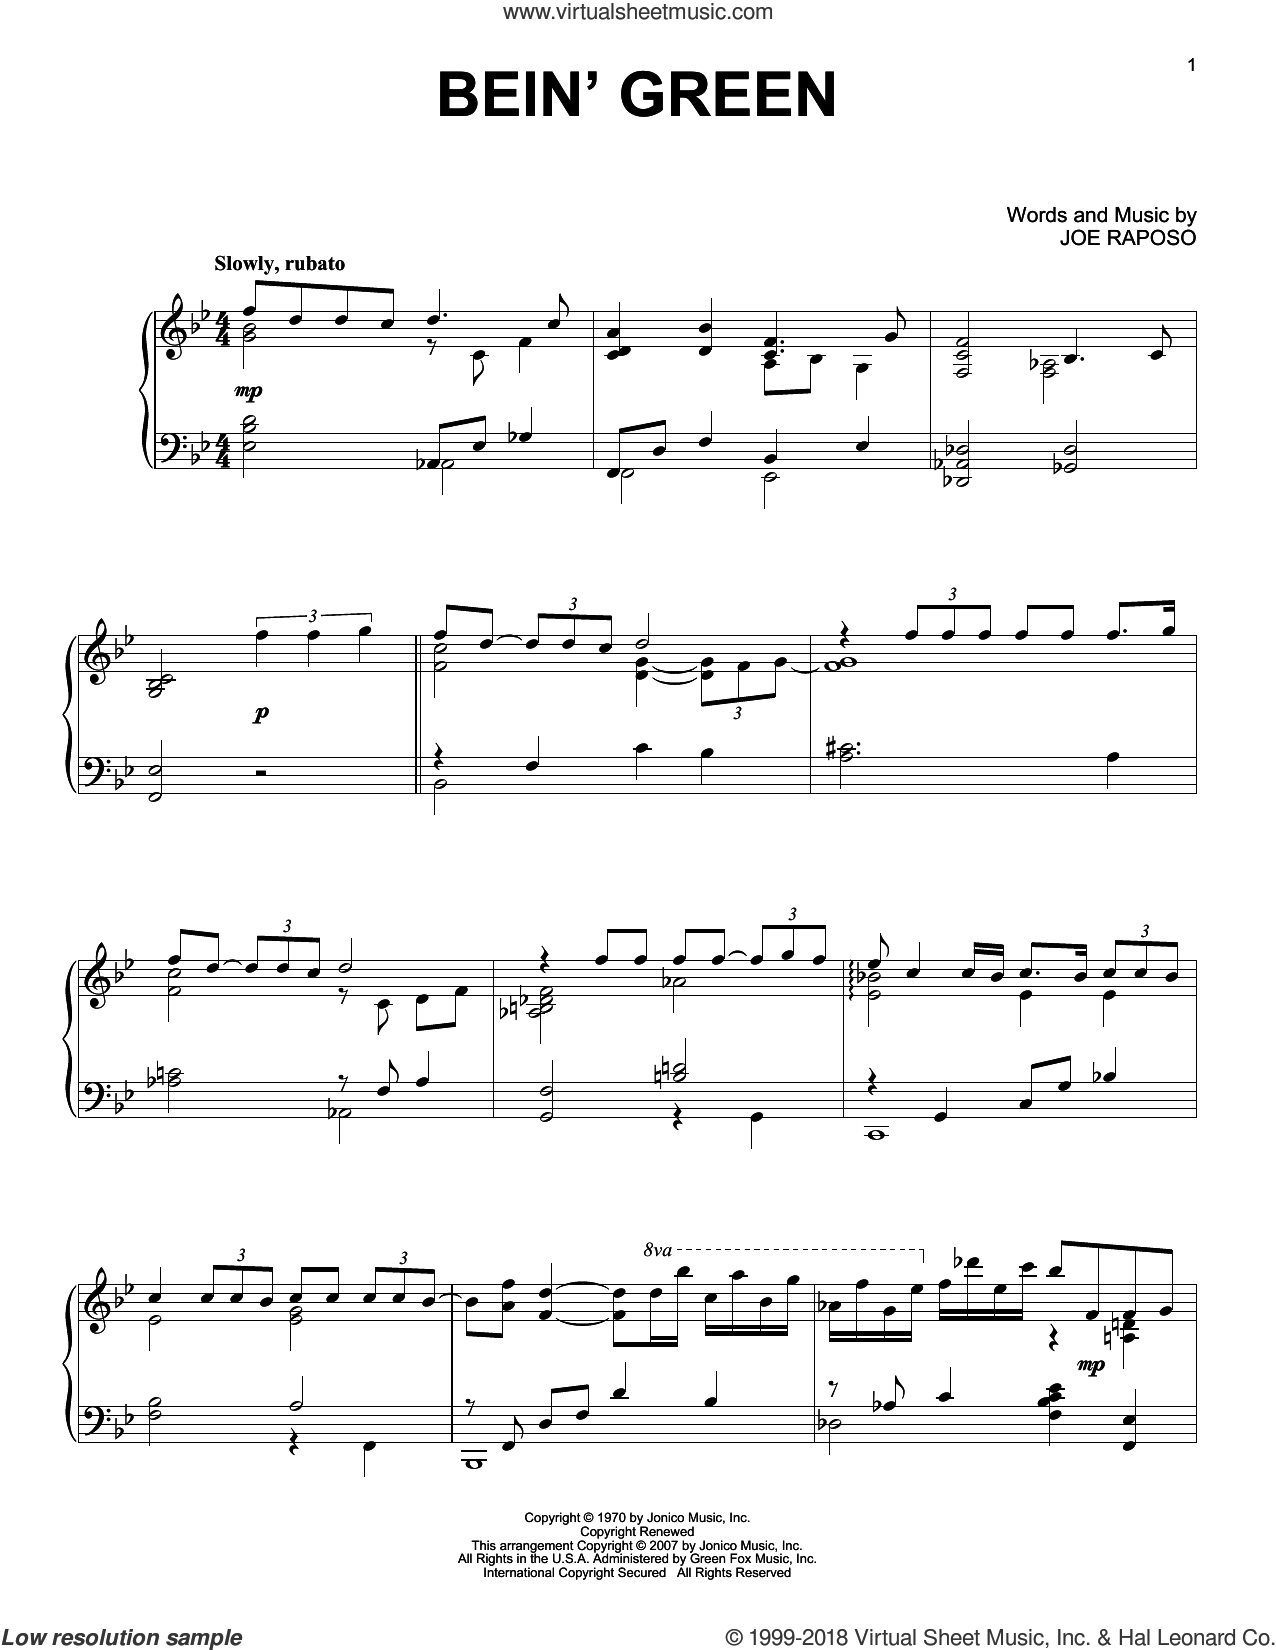 Bein' Green sheet music for piano solo by Joe Raposo